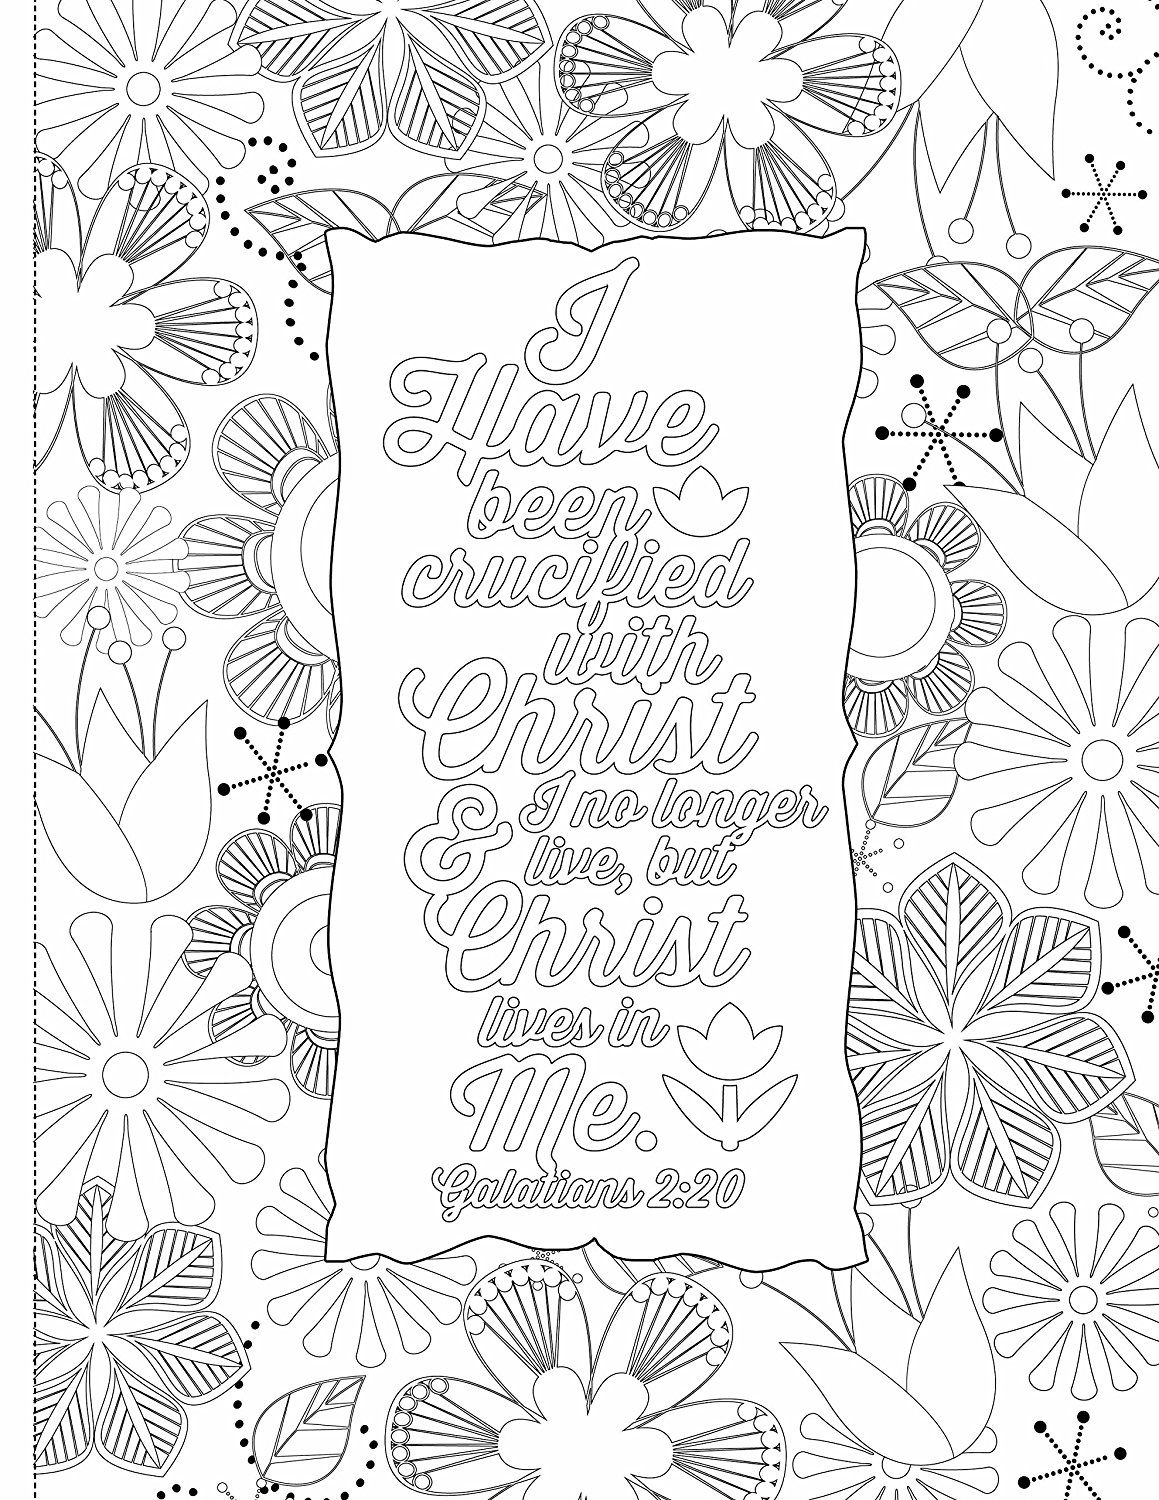 Inspiring words coloring book verses from the bible you can